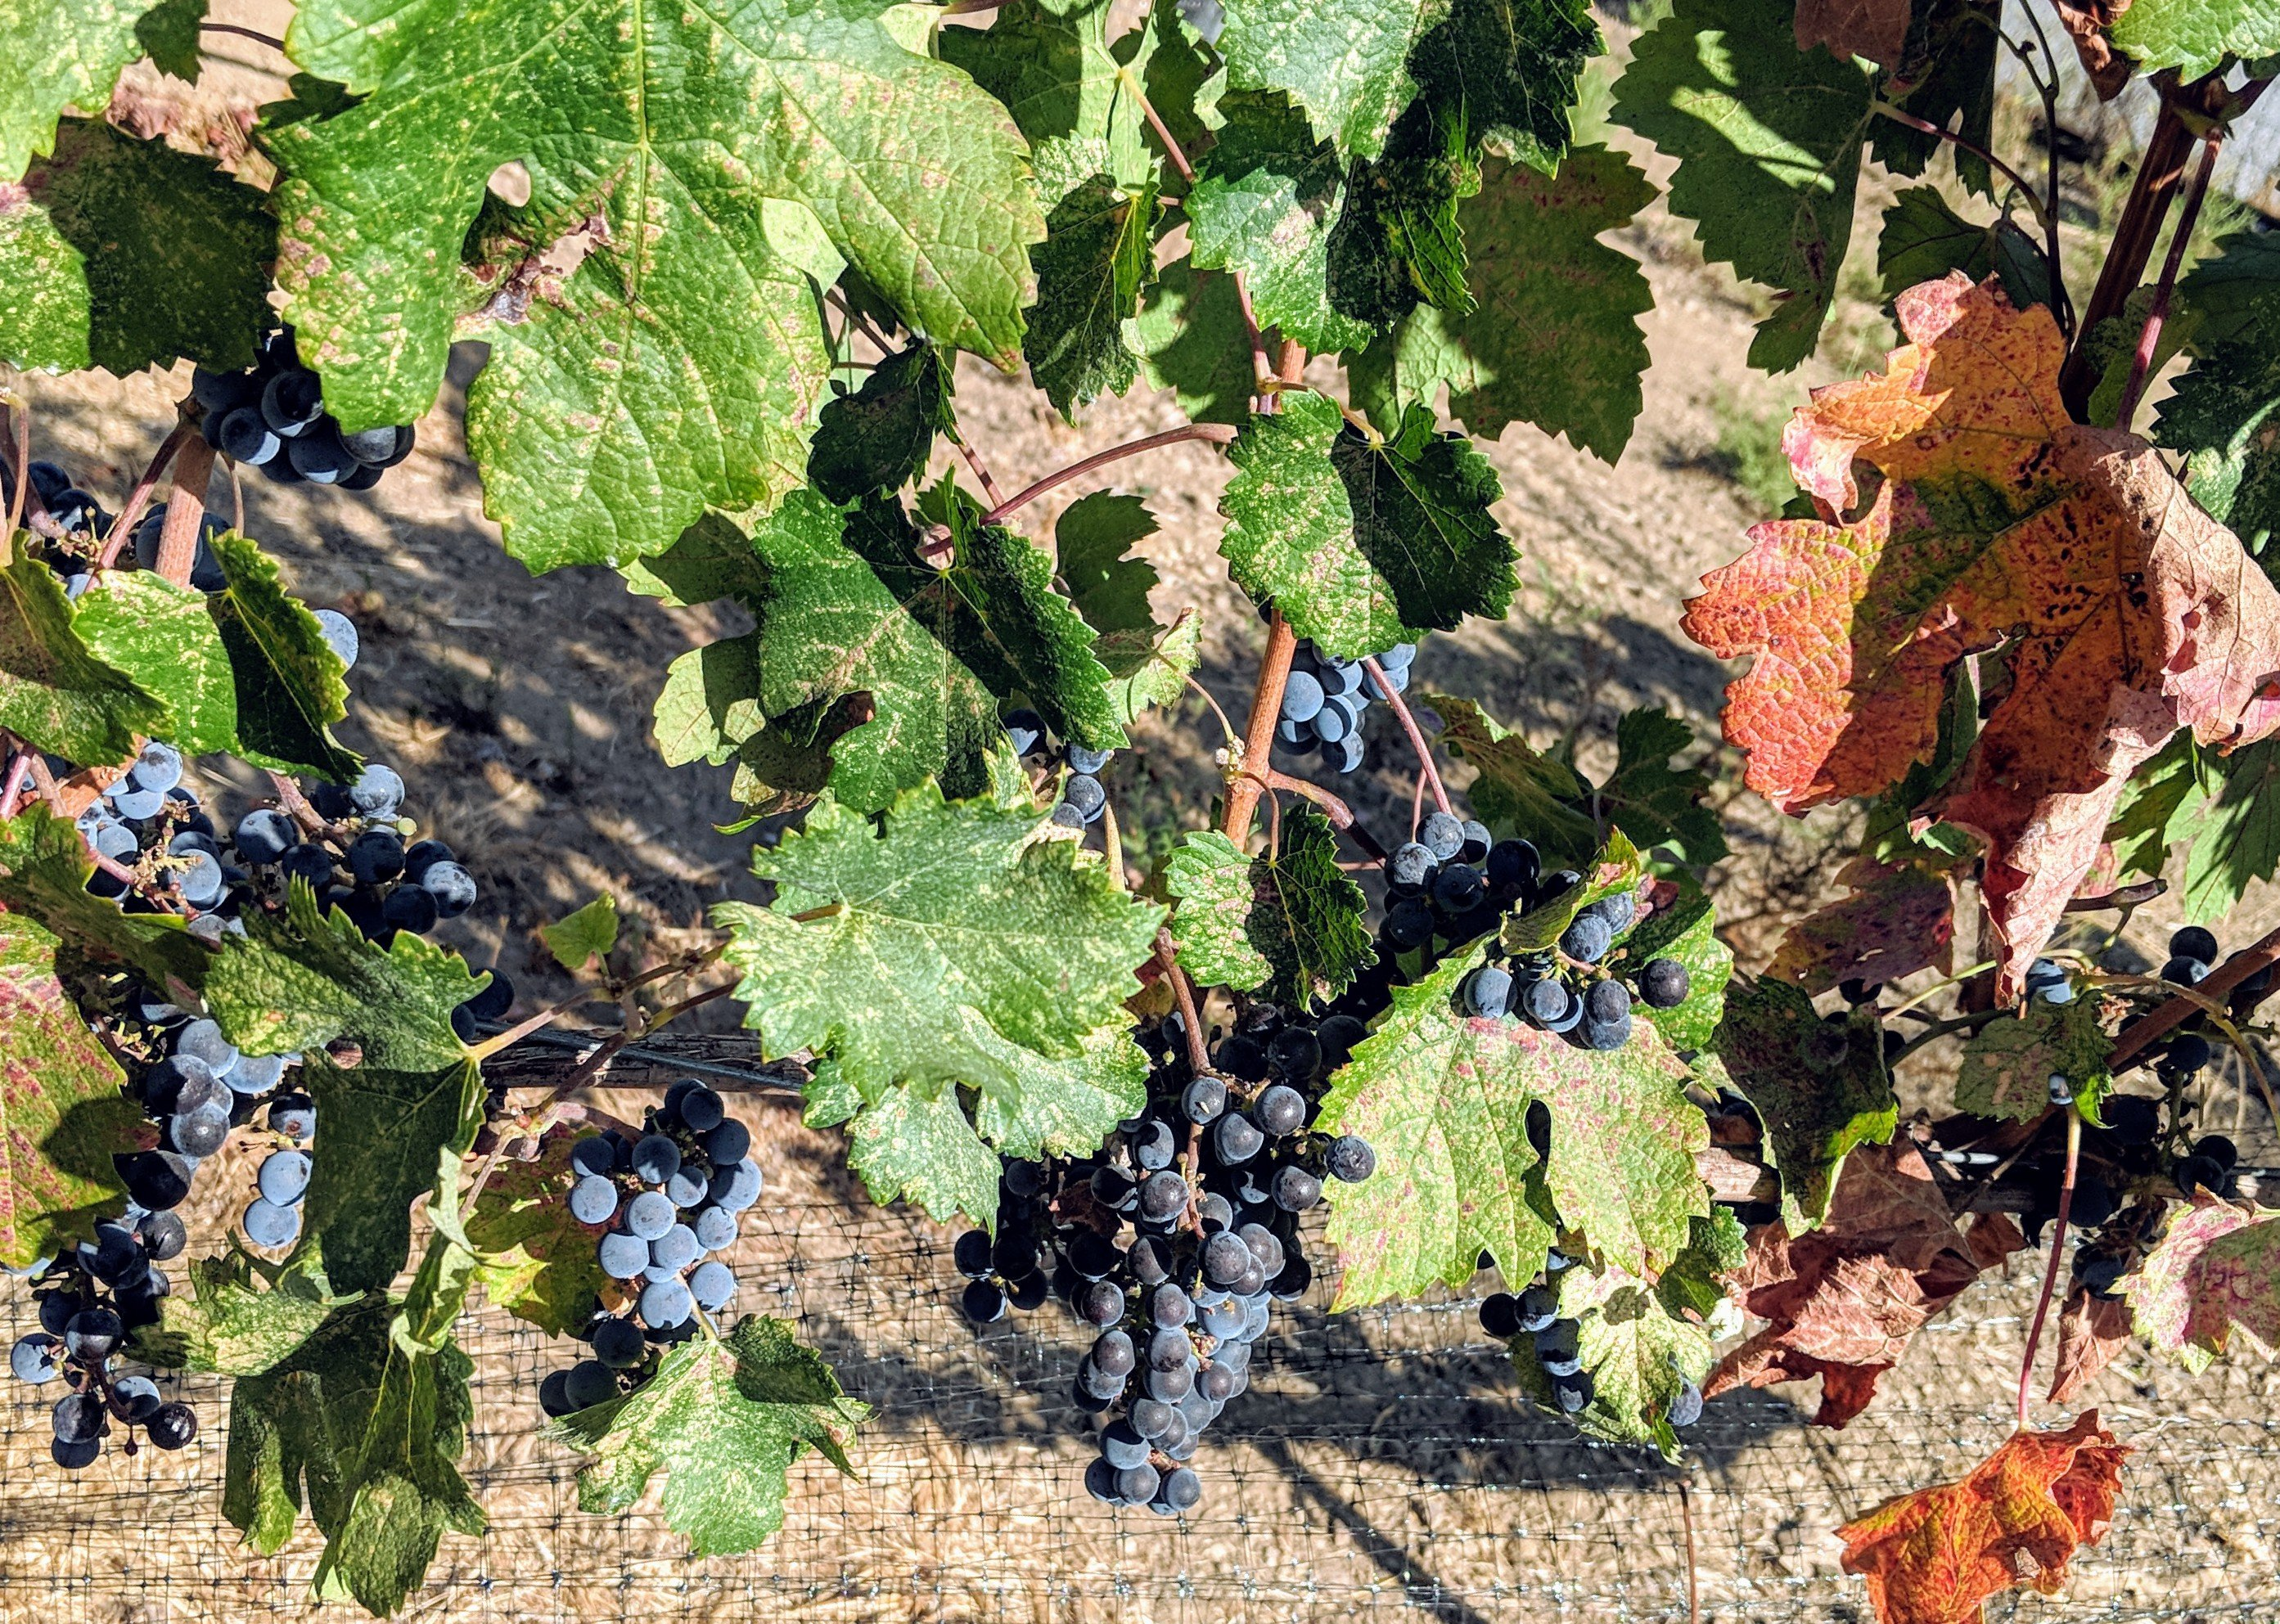 Merlot_Grapes-on vine-2018.jpg